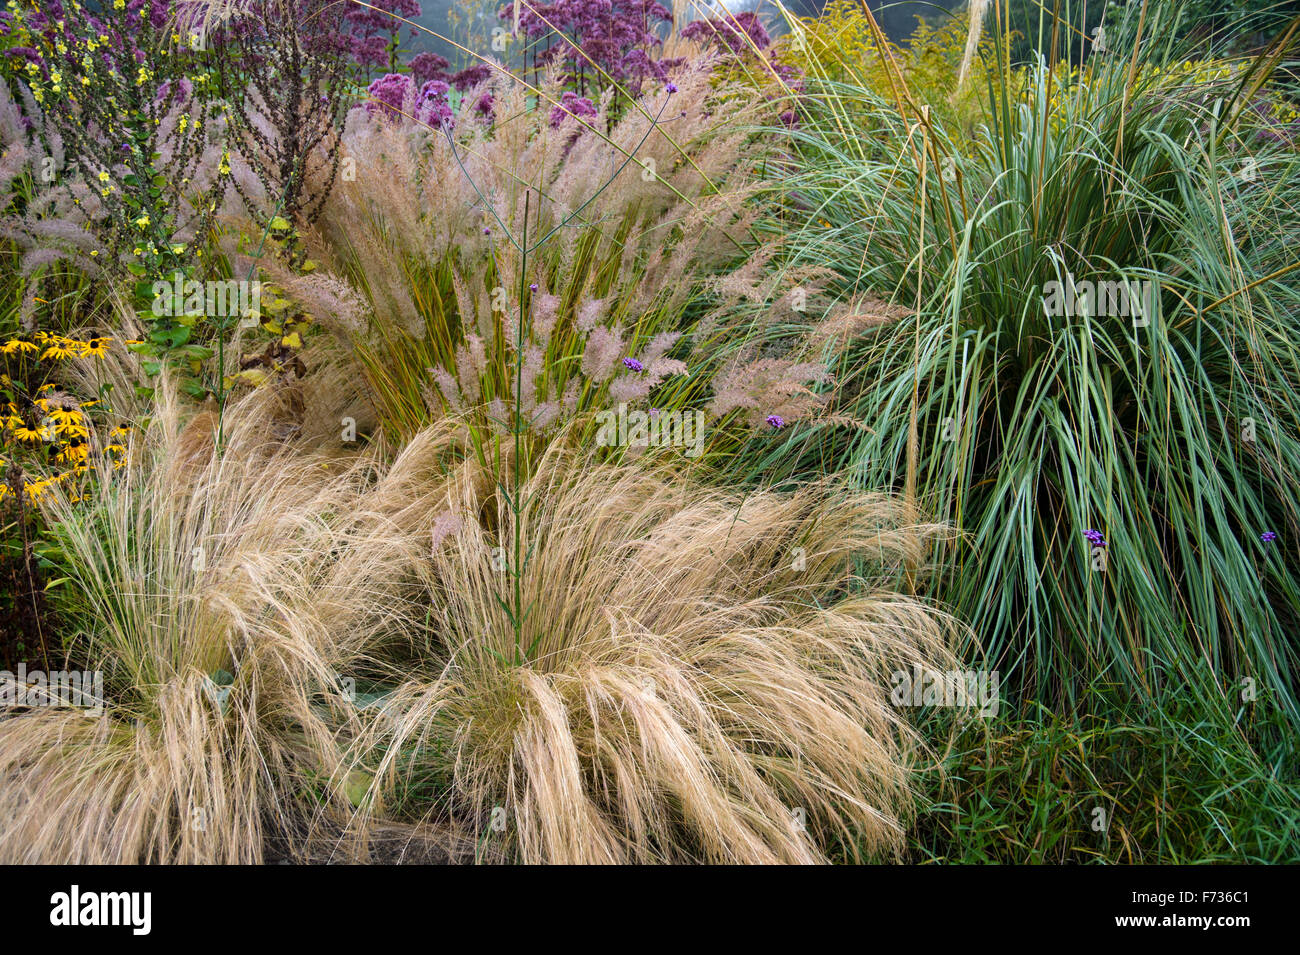 Ornamental grasses search gardening 100 images for Border grasses for landscaping